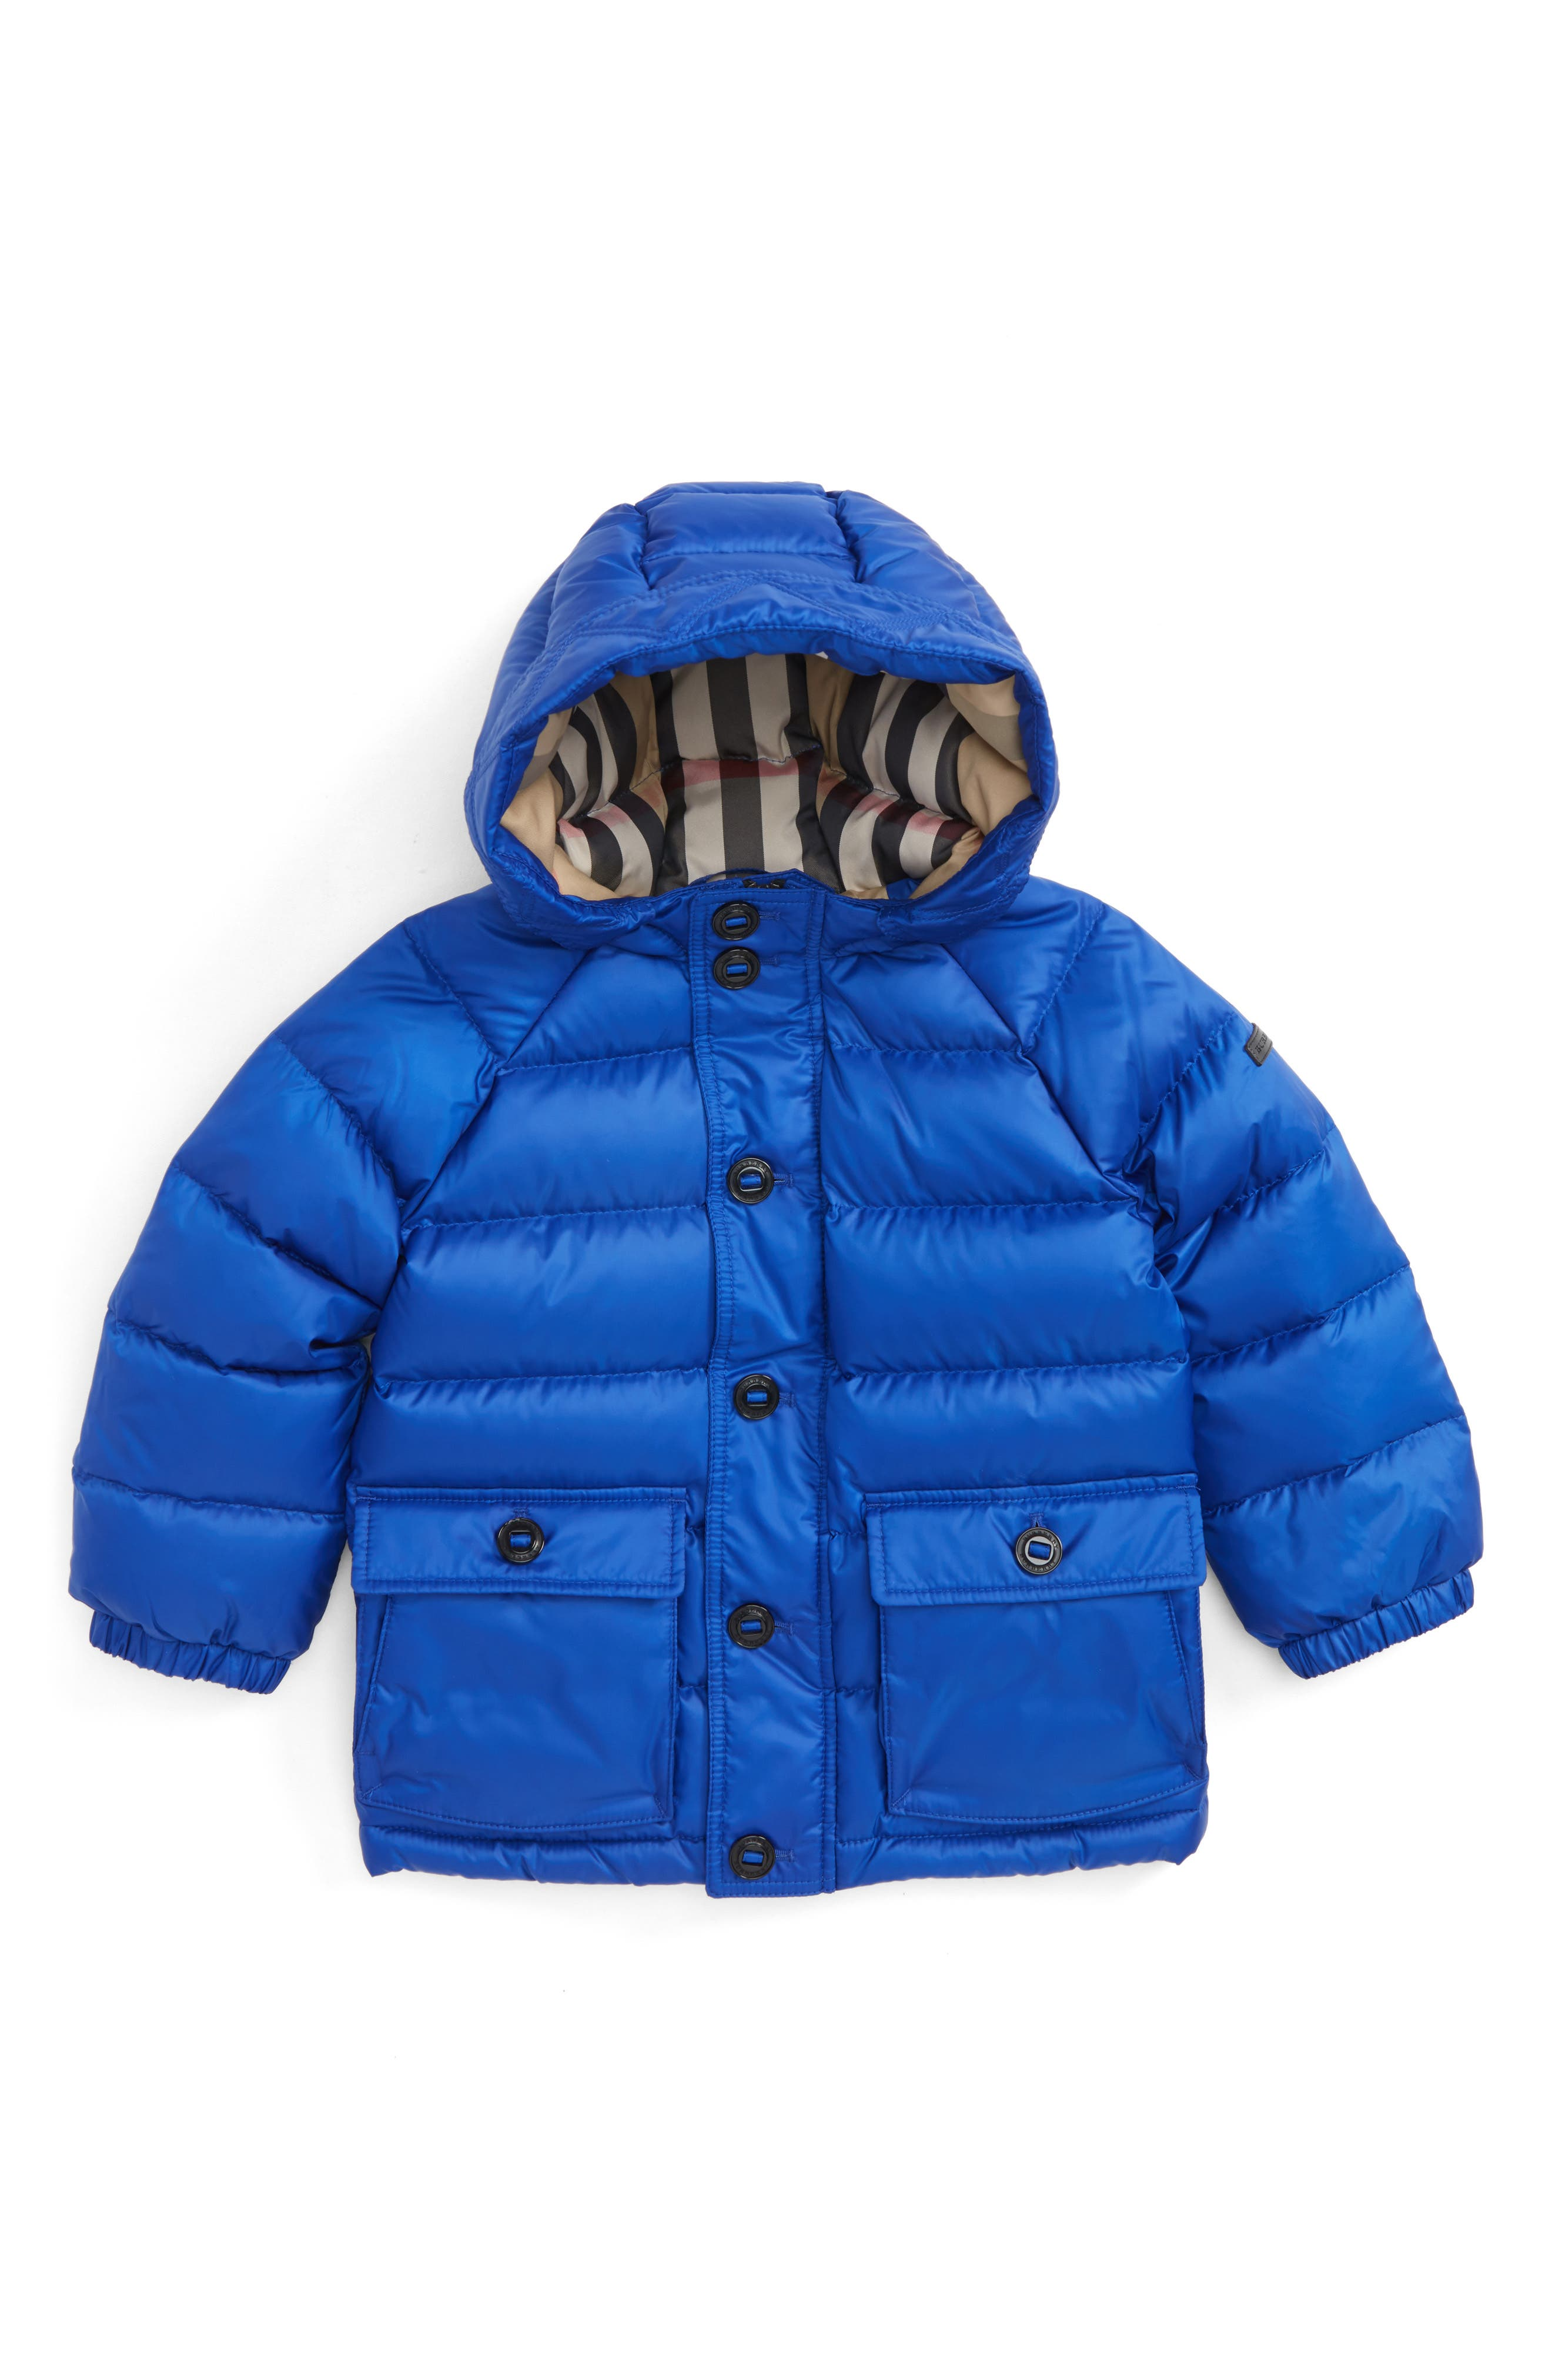 Alternate Image 1 Selected - Burberry Mini Lachlan Hooded Down Jacket (Baby Boys)